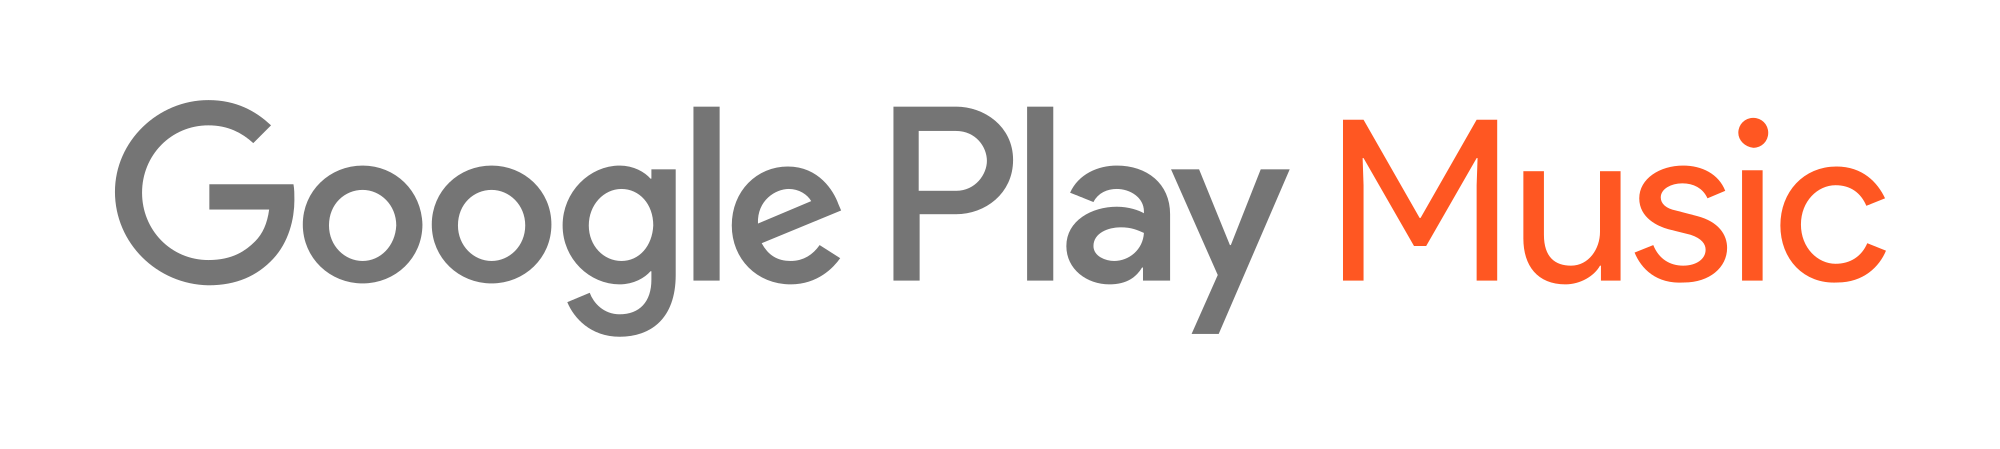 Google Play Music, What is Google Play Music